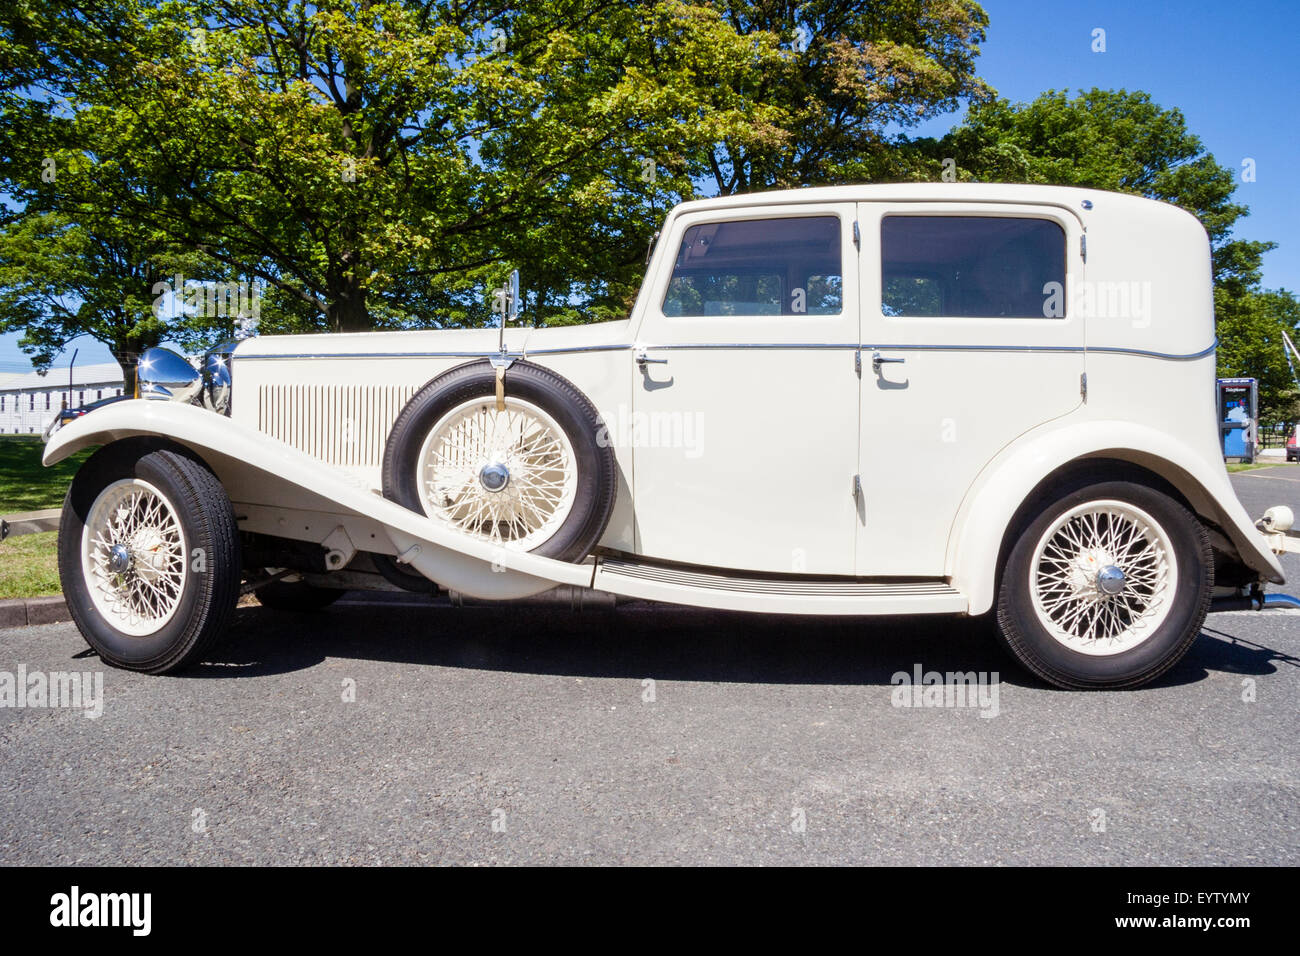 White Invicta Classic Car Side View Of Parked Car Stock Photo